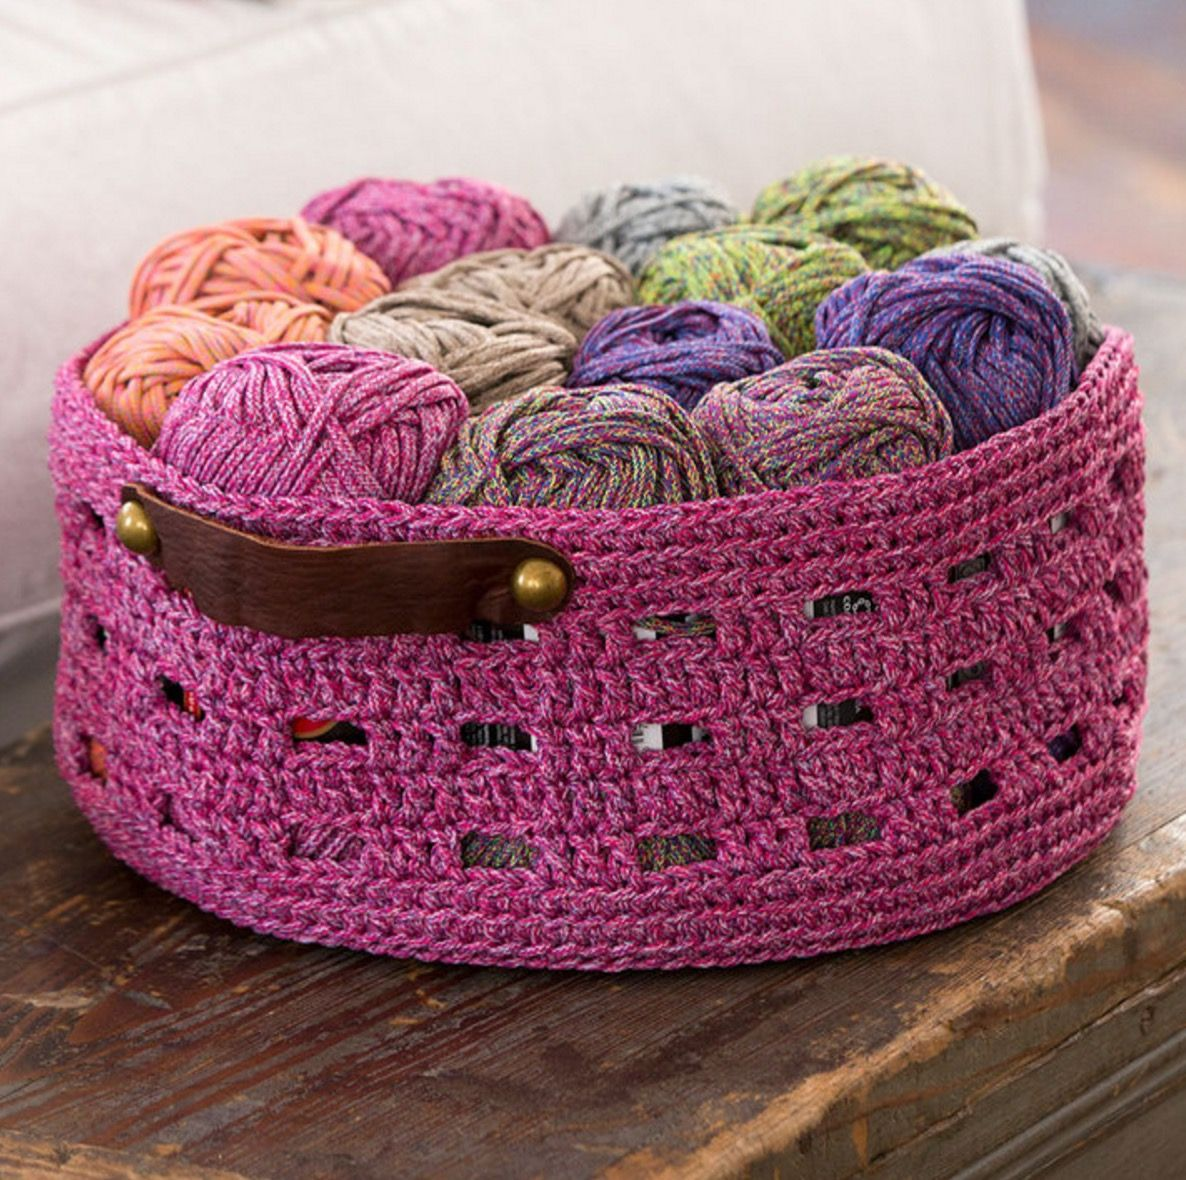 Crochet storage basket pattern lots of ideas rope basket crochet storage basket pattern lots of ideas bankloansurffo Gallery